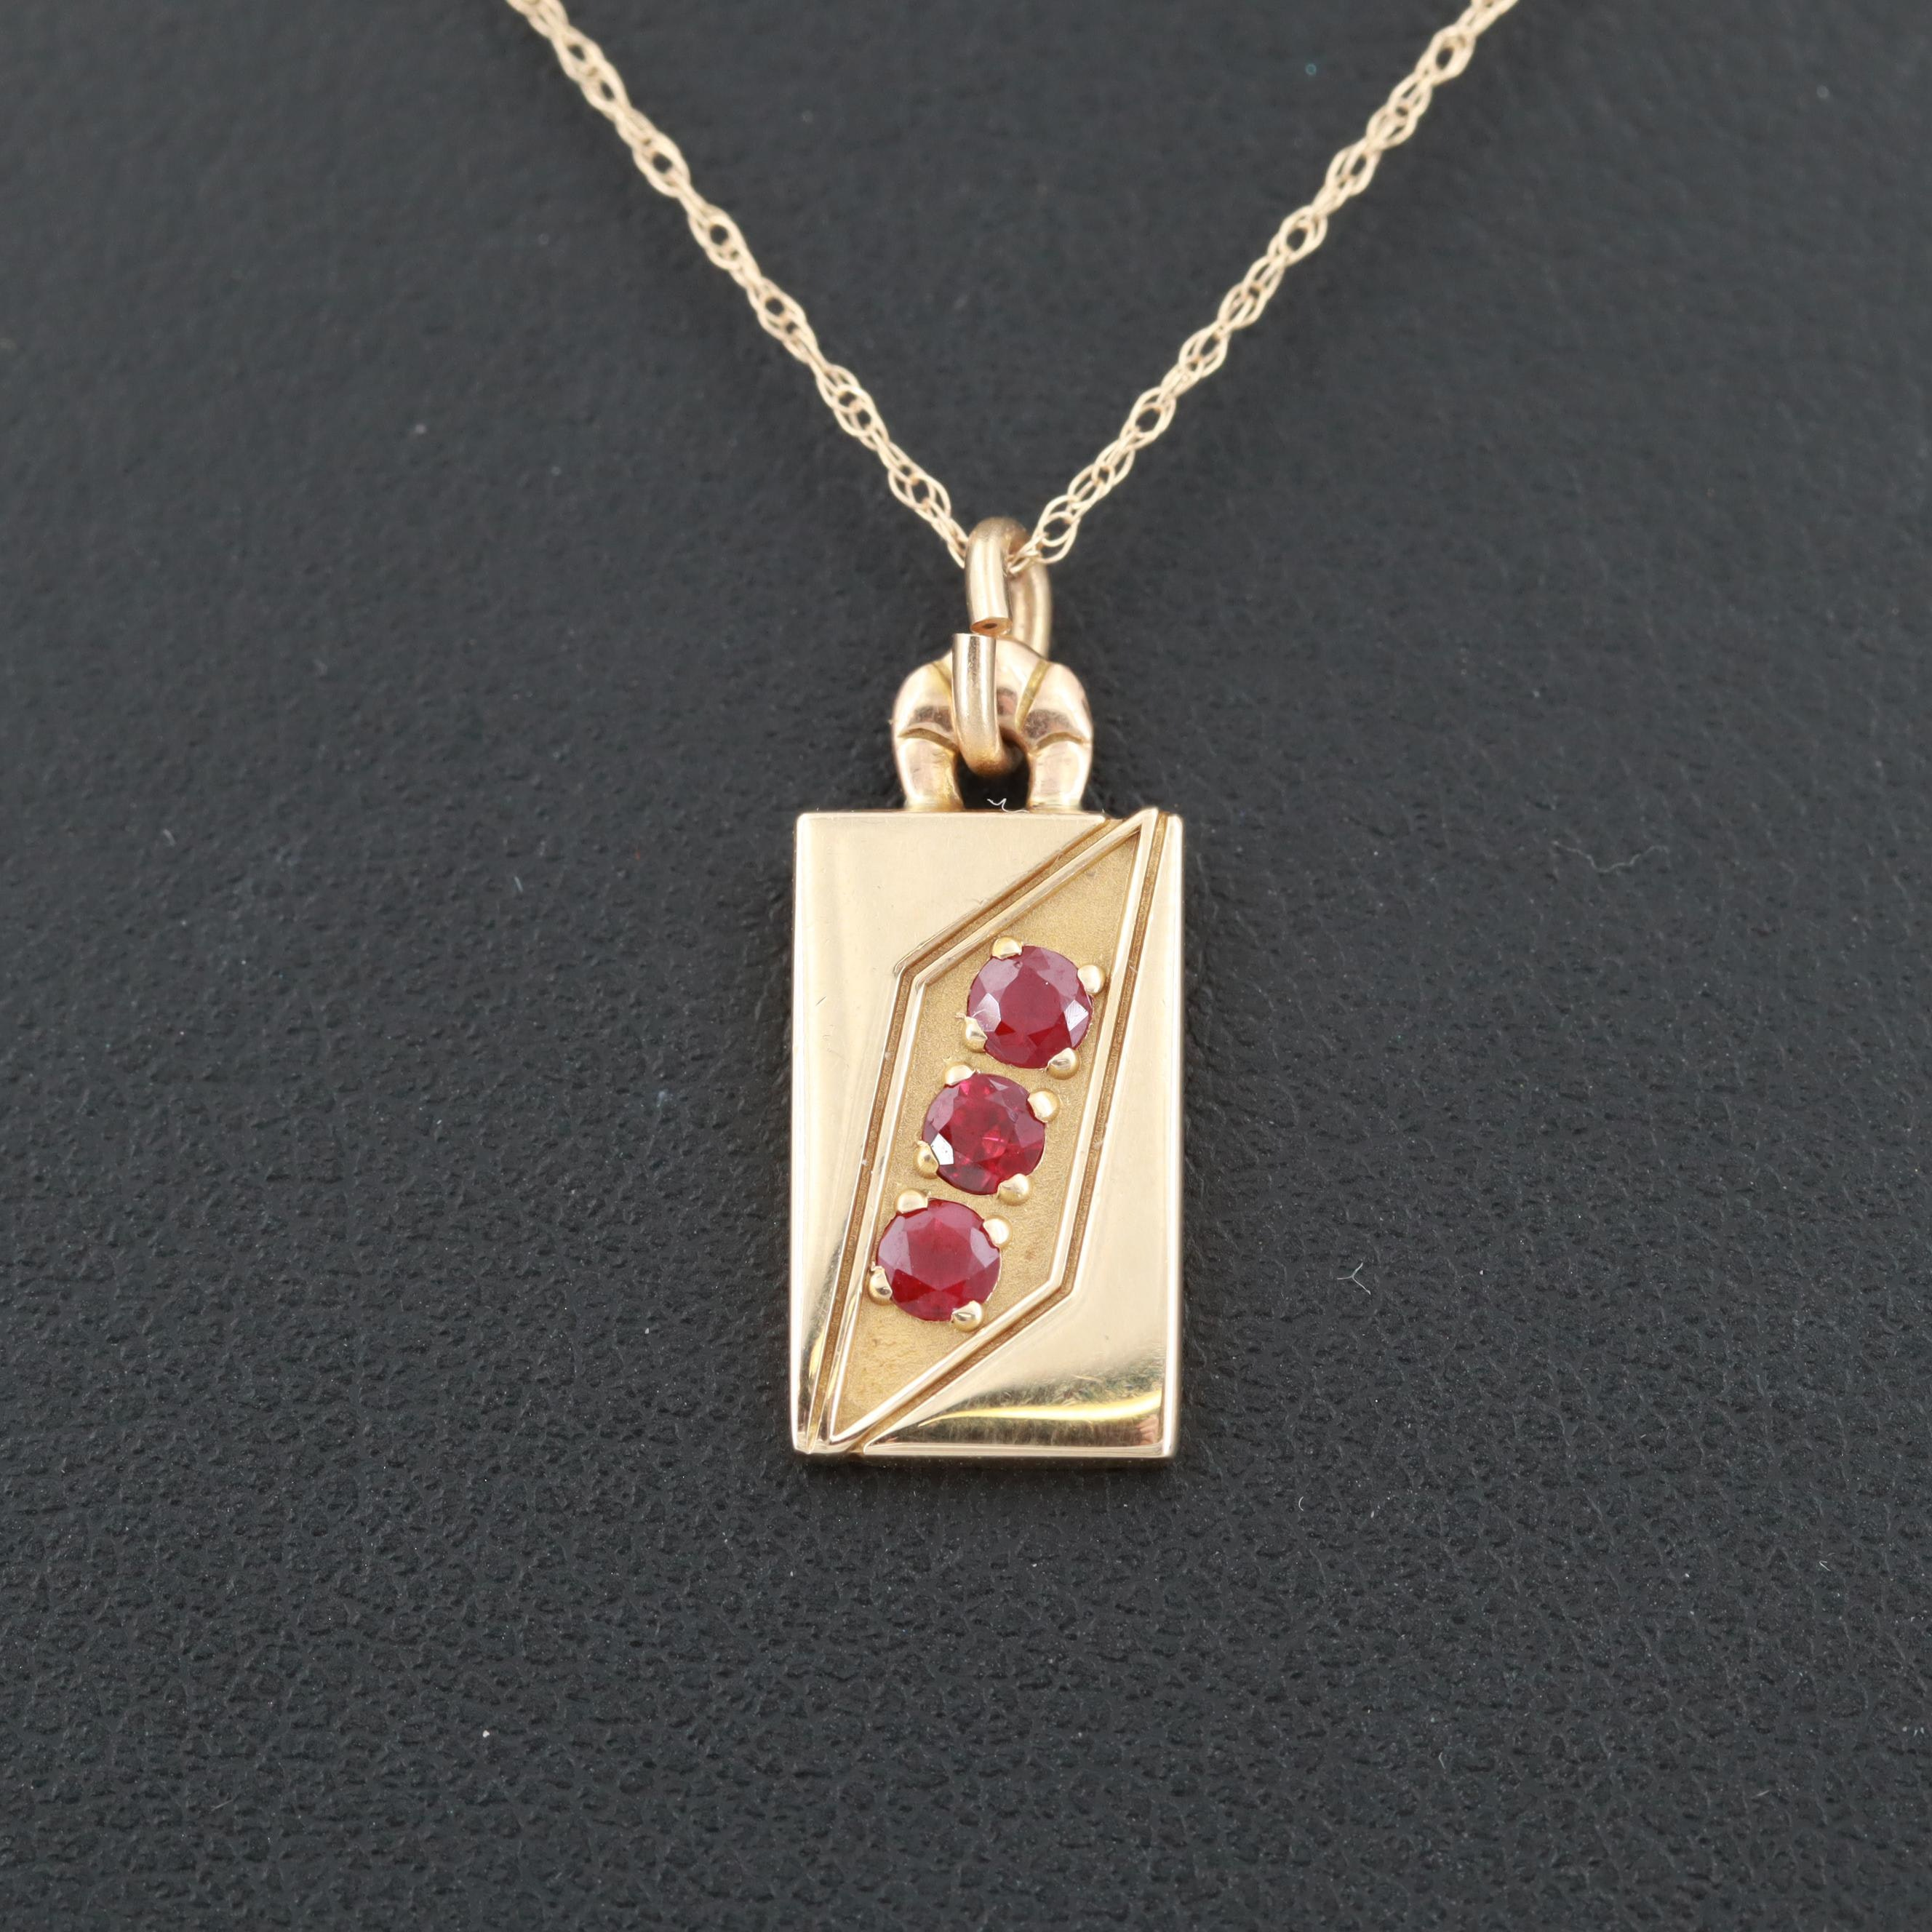 O. C. Tanner 14K Yellow Gold Ruby Pendant Necklace